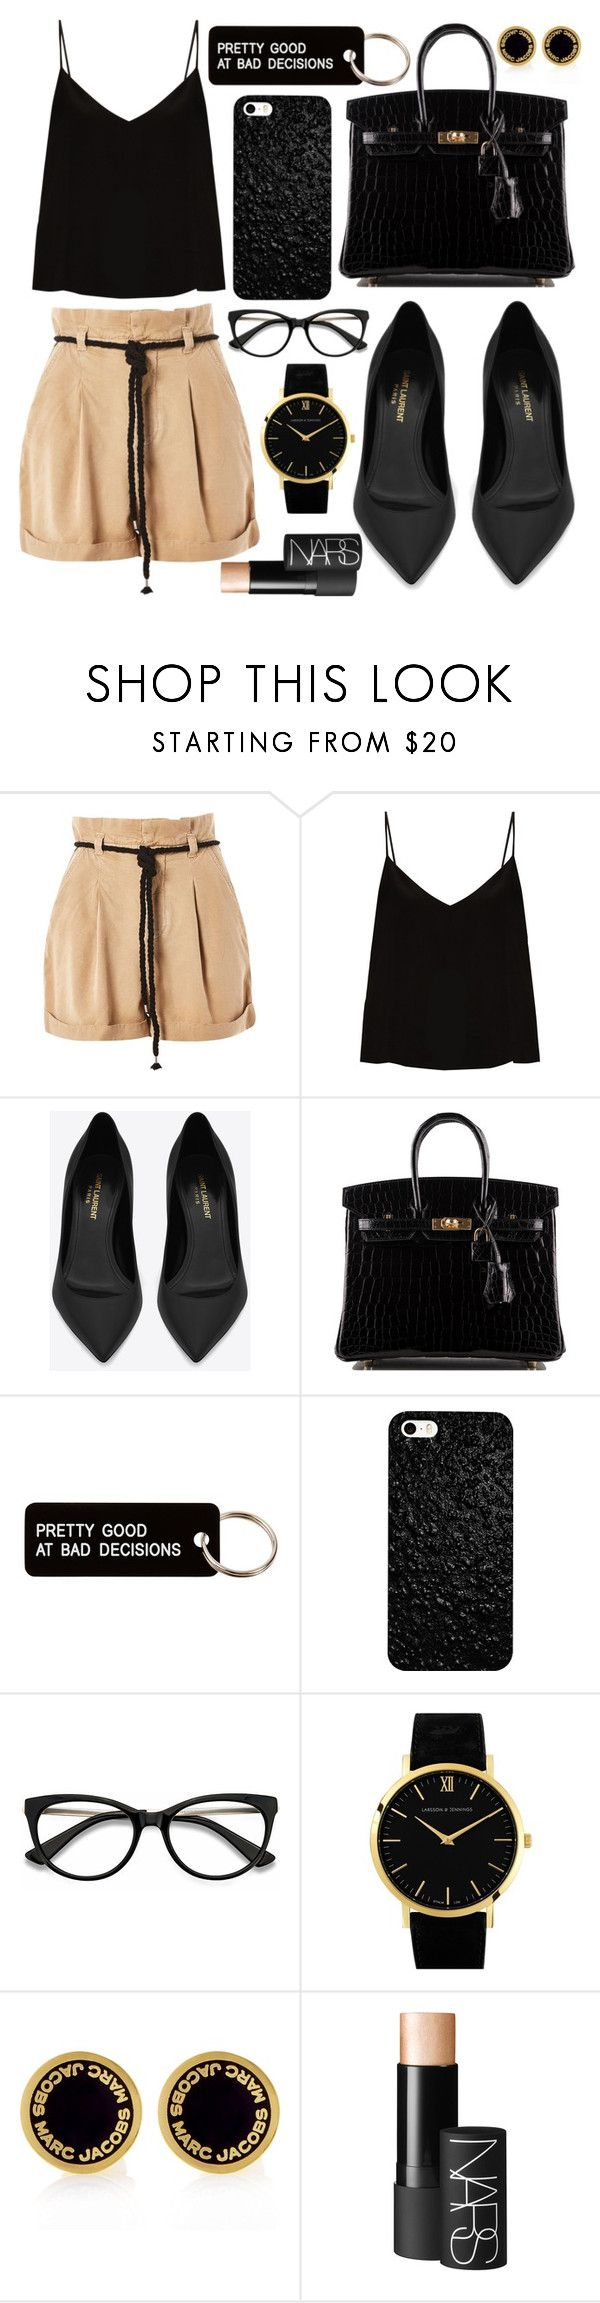 """""""Pretty Good At Bad Decisions"""" by katie-longmore ❤ liked on Polyvore featuring Topshop, Raey, Yves Saint Laurent, Hermès, Various Projects, EyeBuyDirect.com, Larsson & Jennings, Marc Jacobs and NARS Cosmetics"""